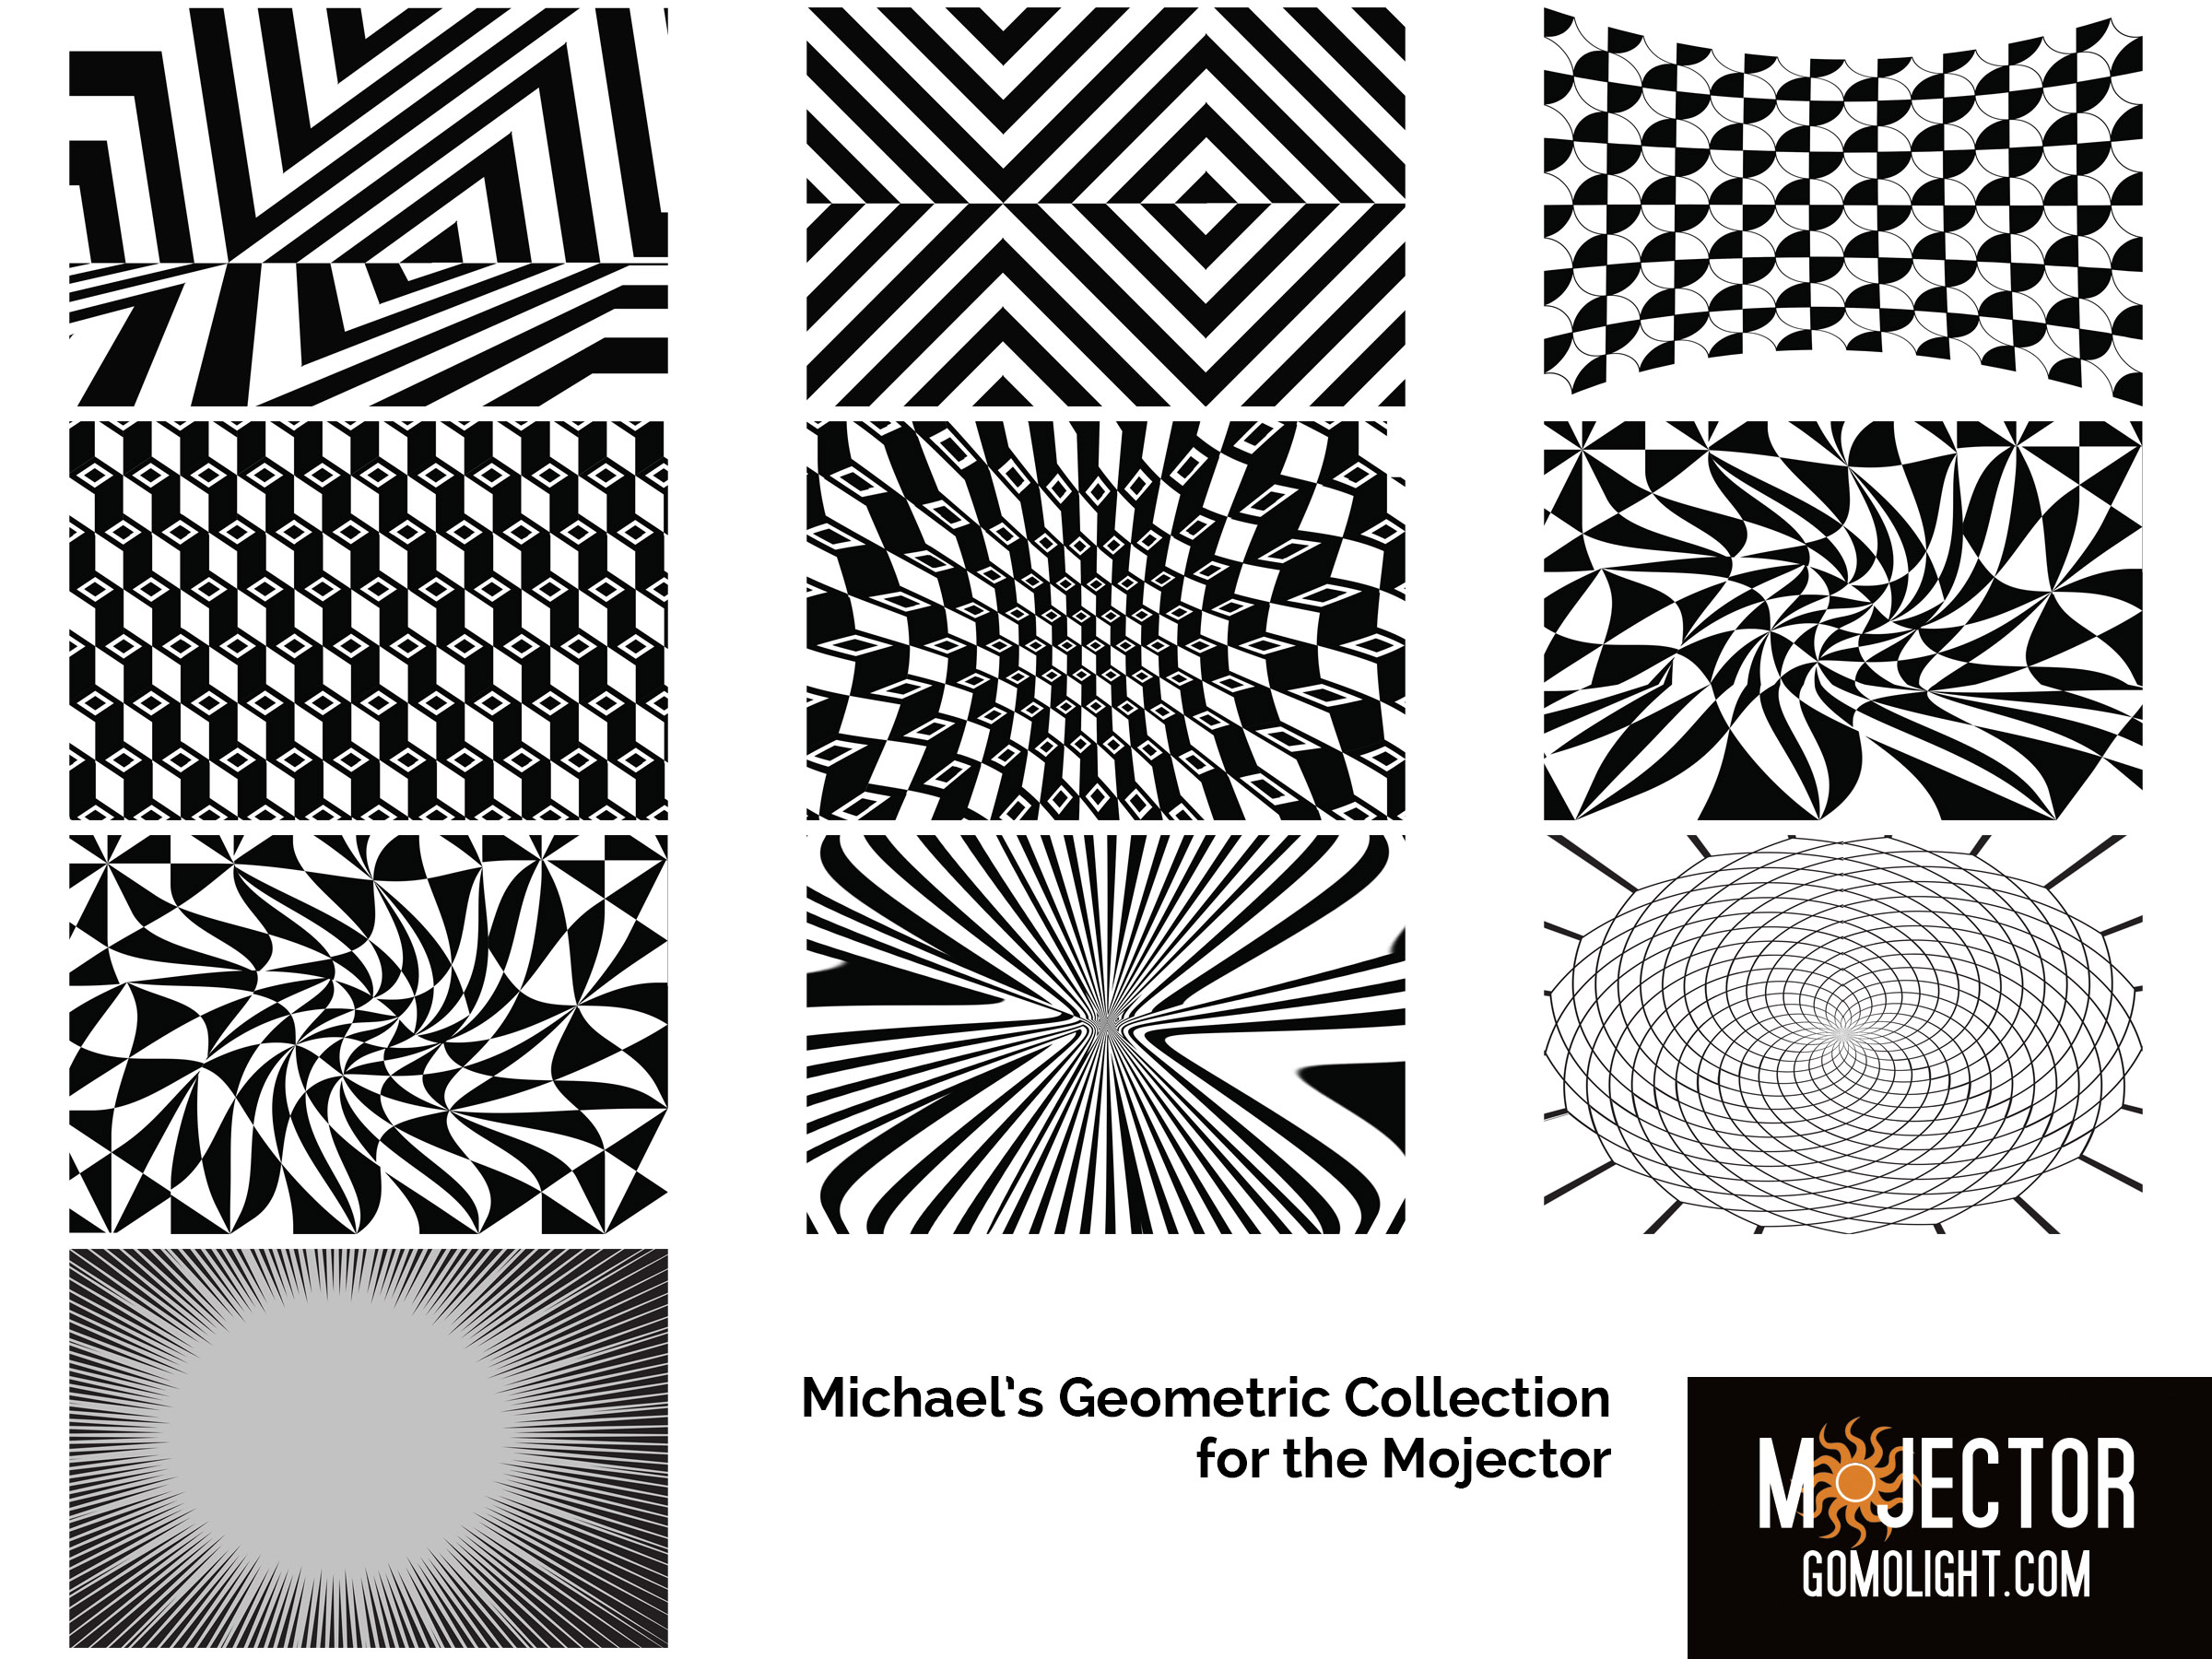 Mojector Michael's Geometric Collection